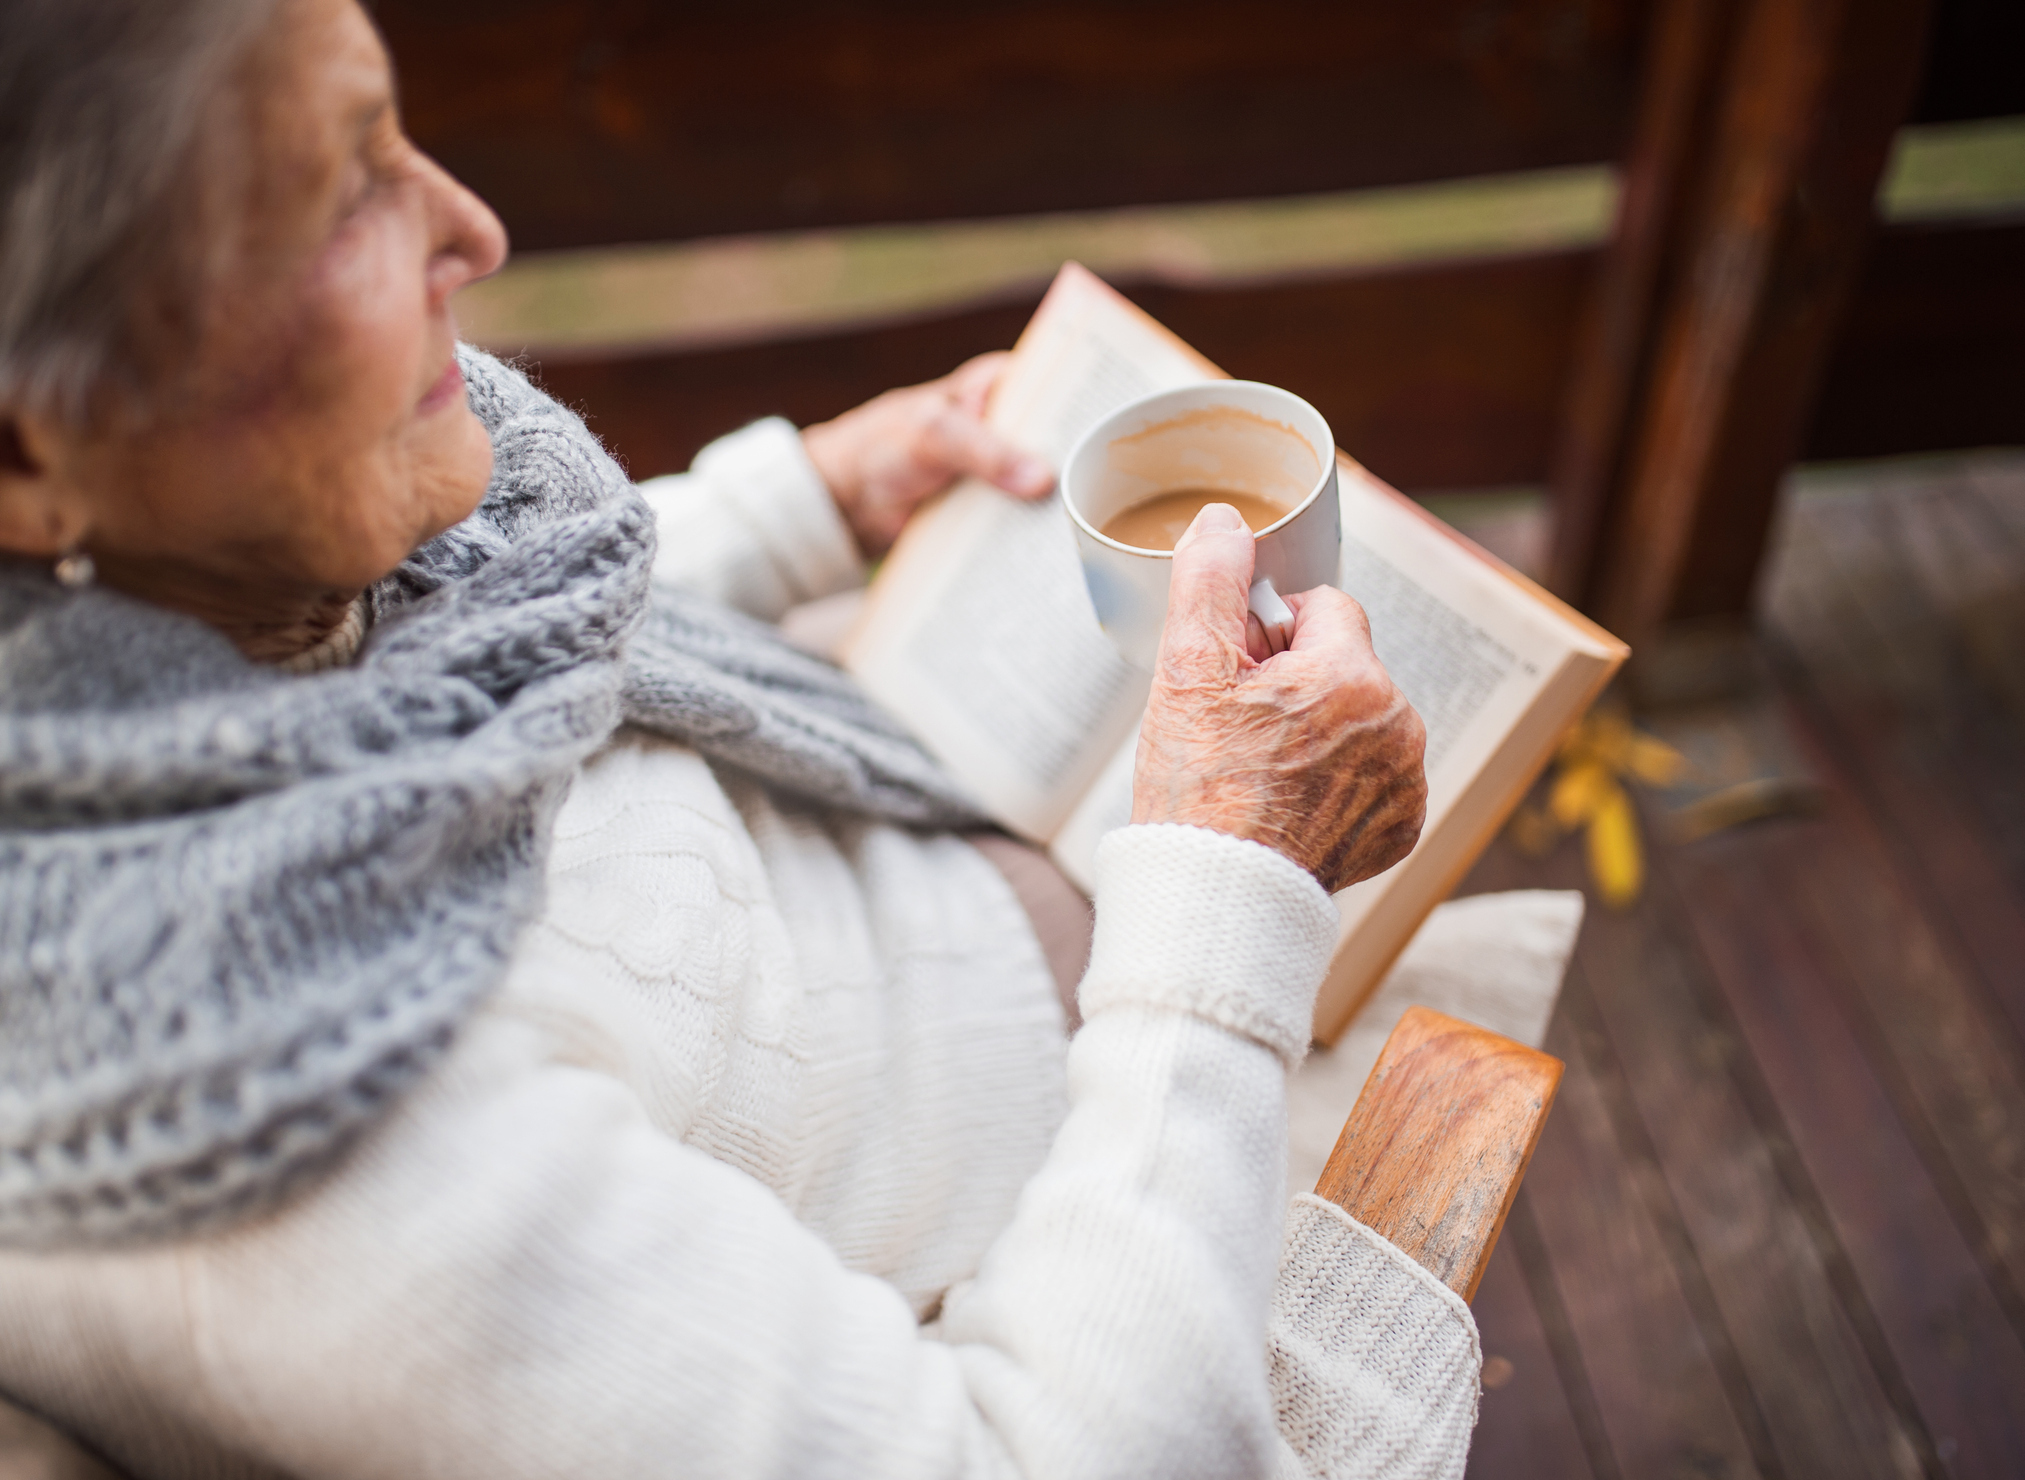 Pre-dementia linked to certain personality traits in a study